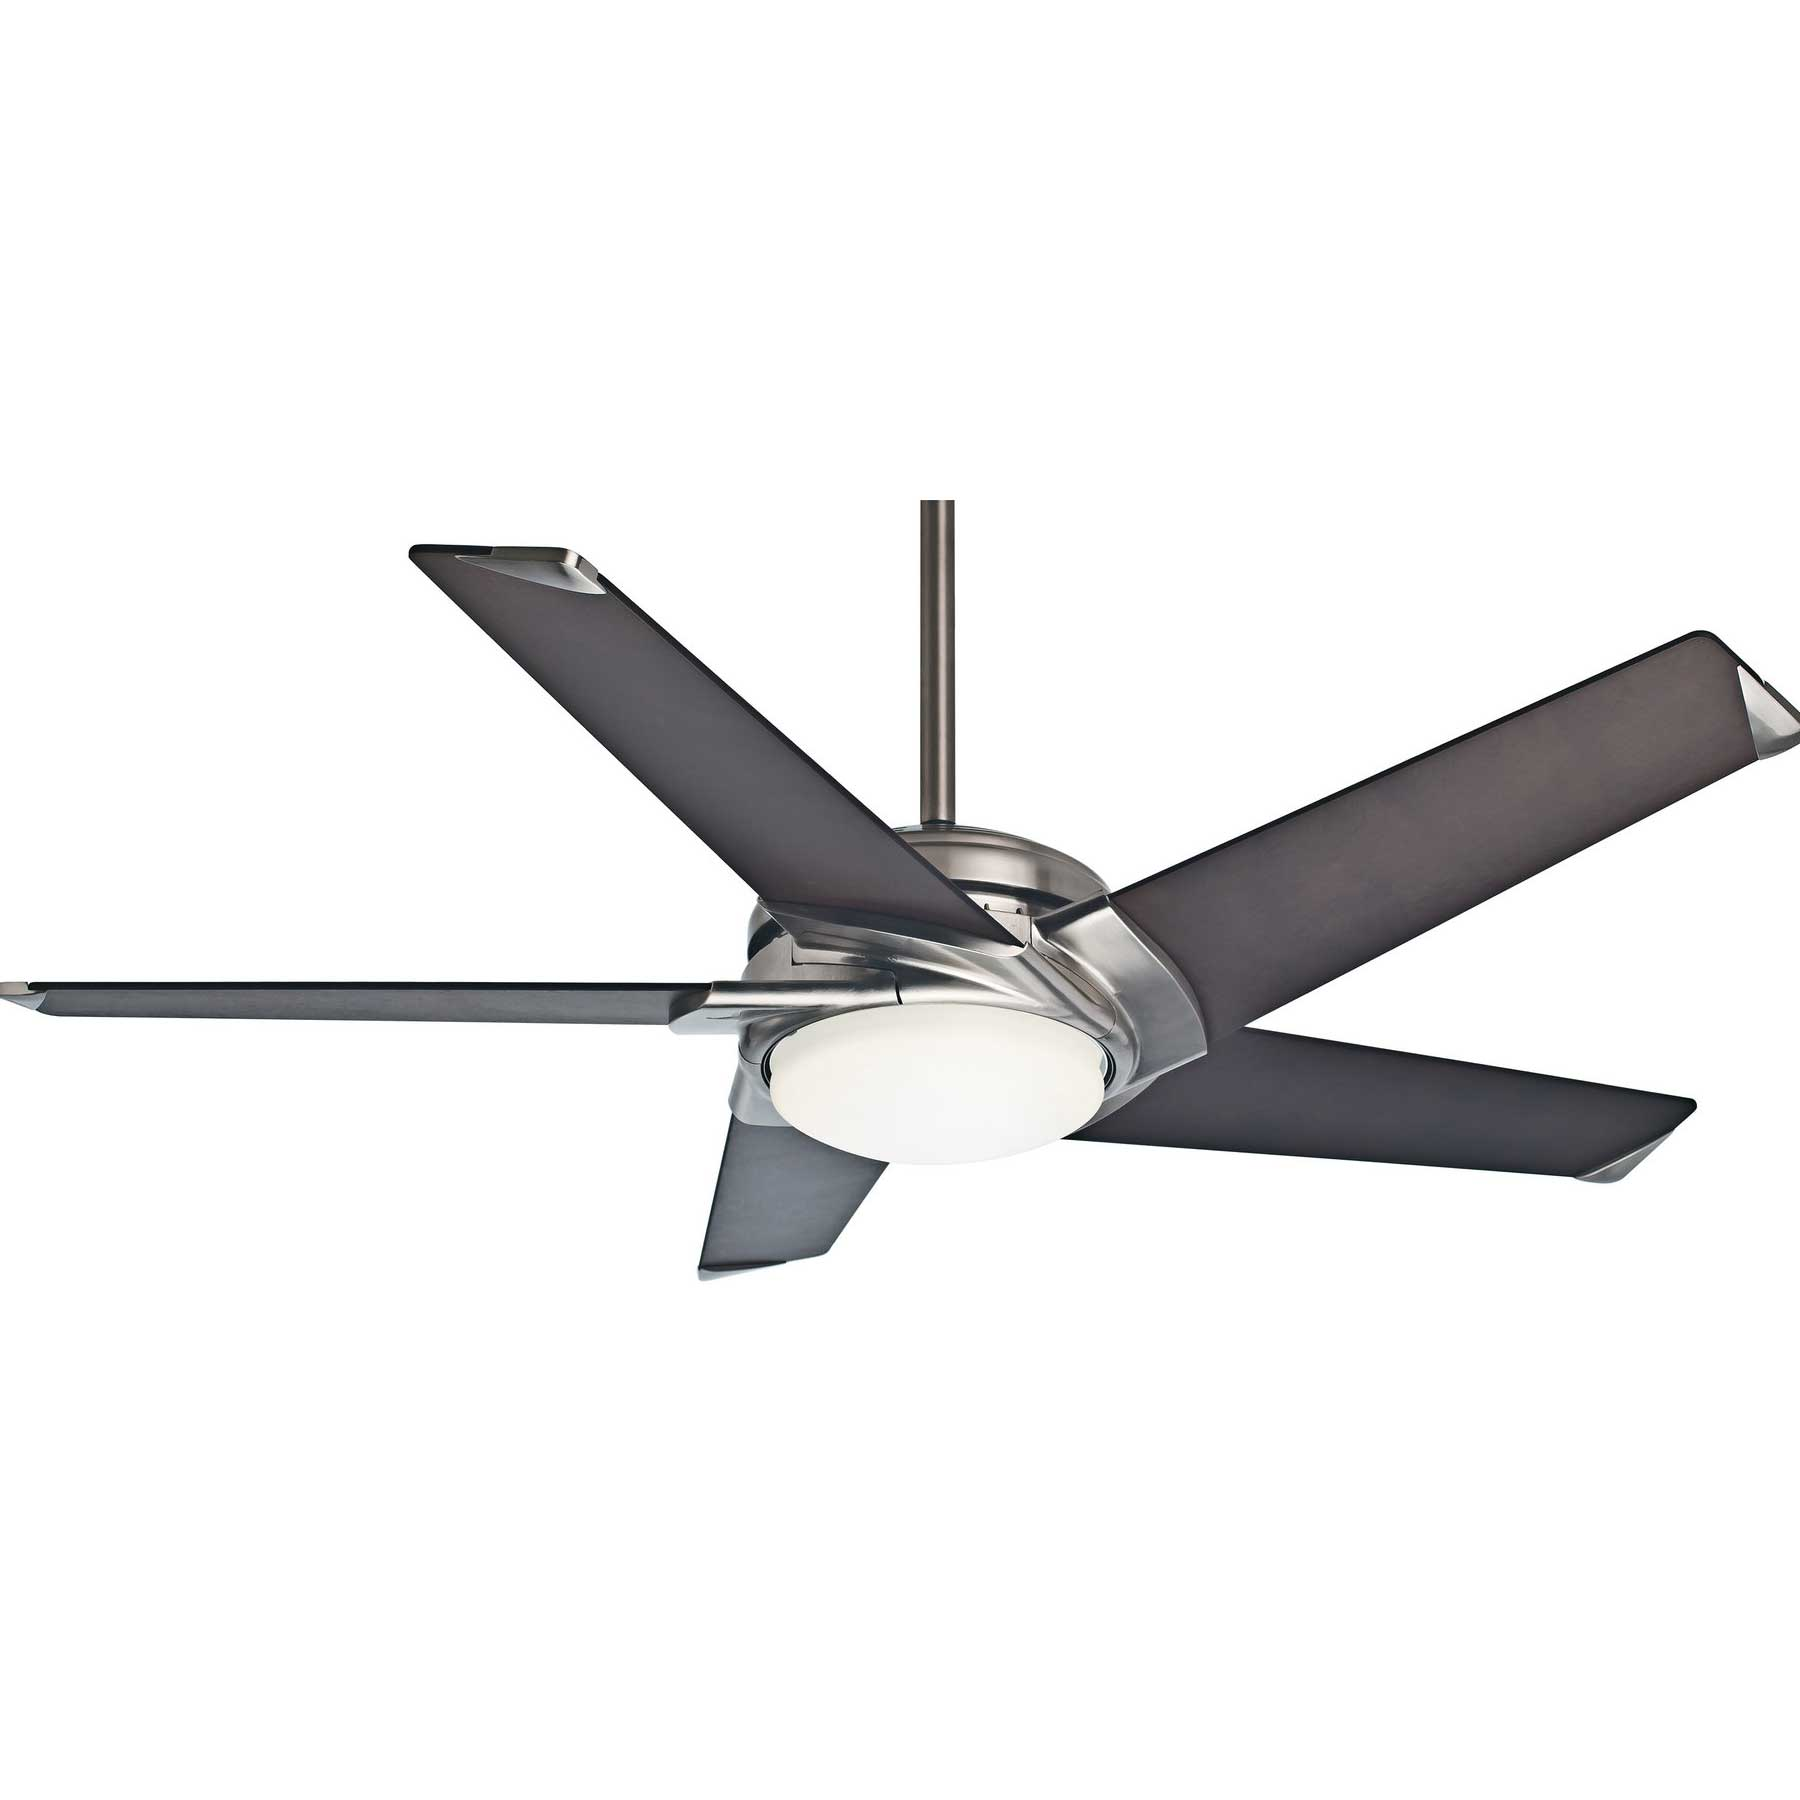 DC 5 Blade Ceiling Fan by Casablanca Fan